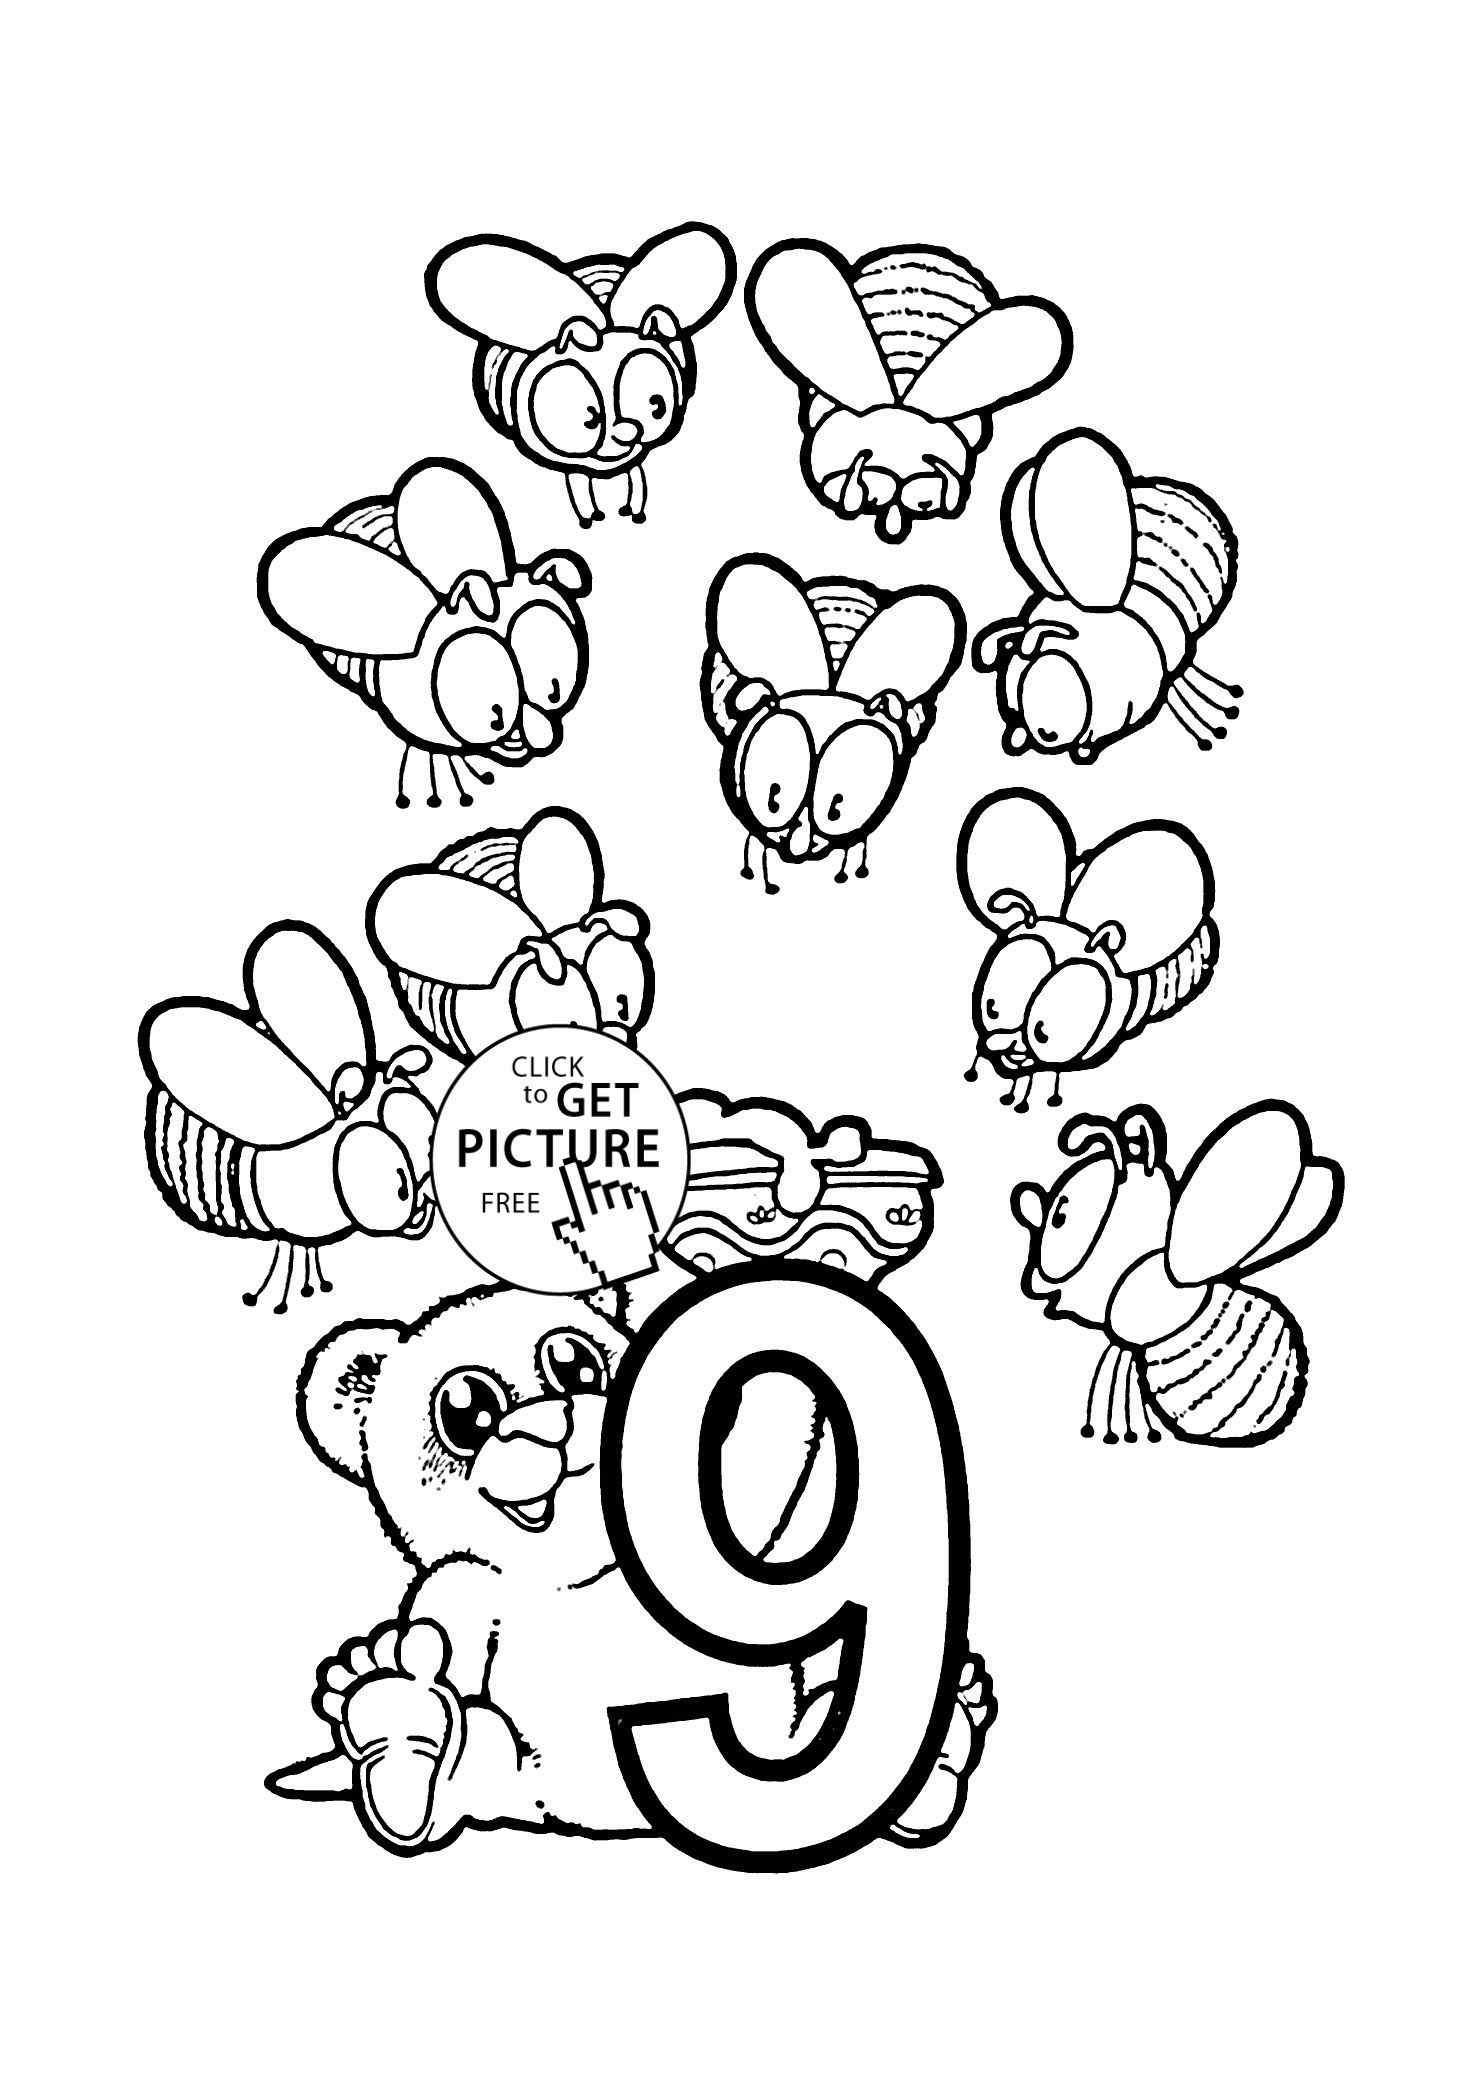 Number 9 Coloring Page Inspirational 43 Number 9 Coloring Page Number 9 Colouring Pages